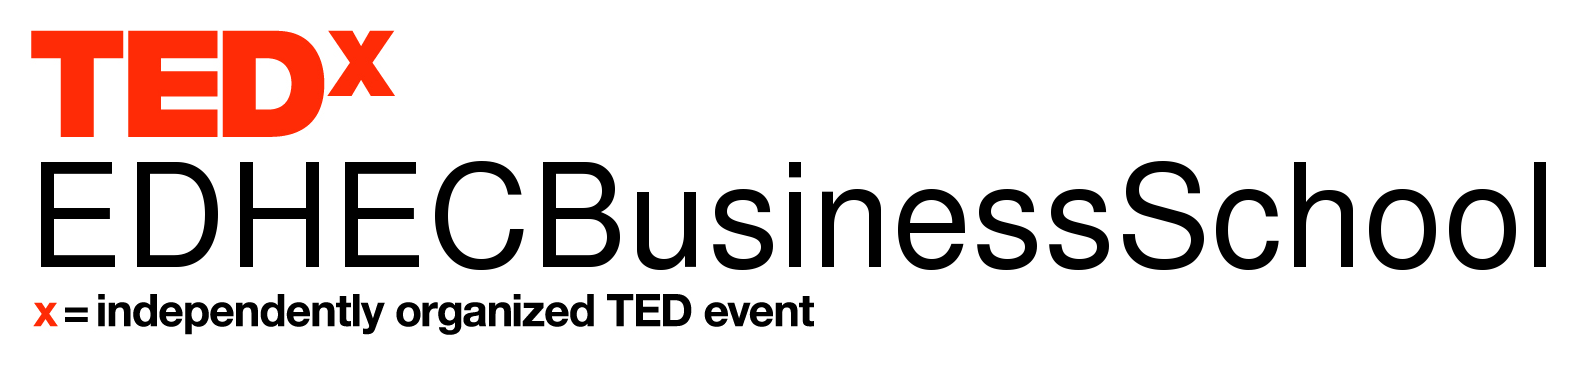 TEDxEDHECBusinessSchool